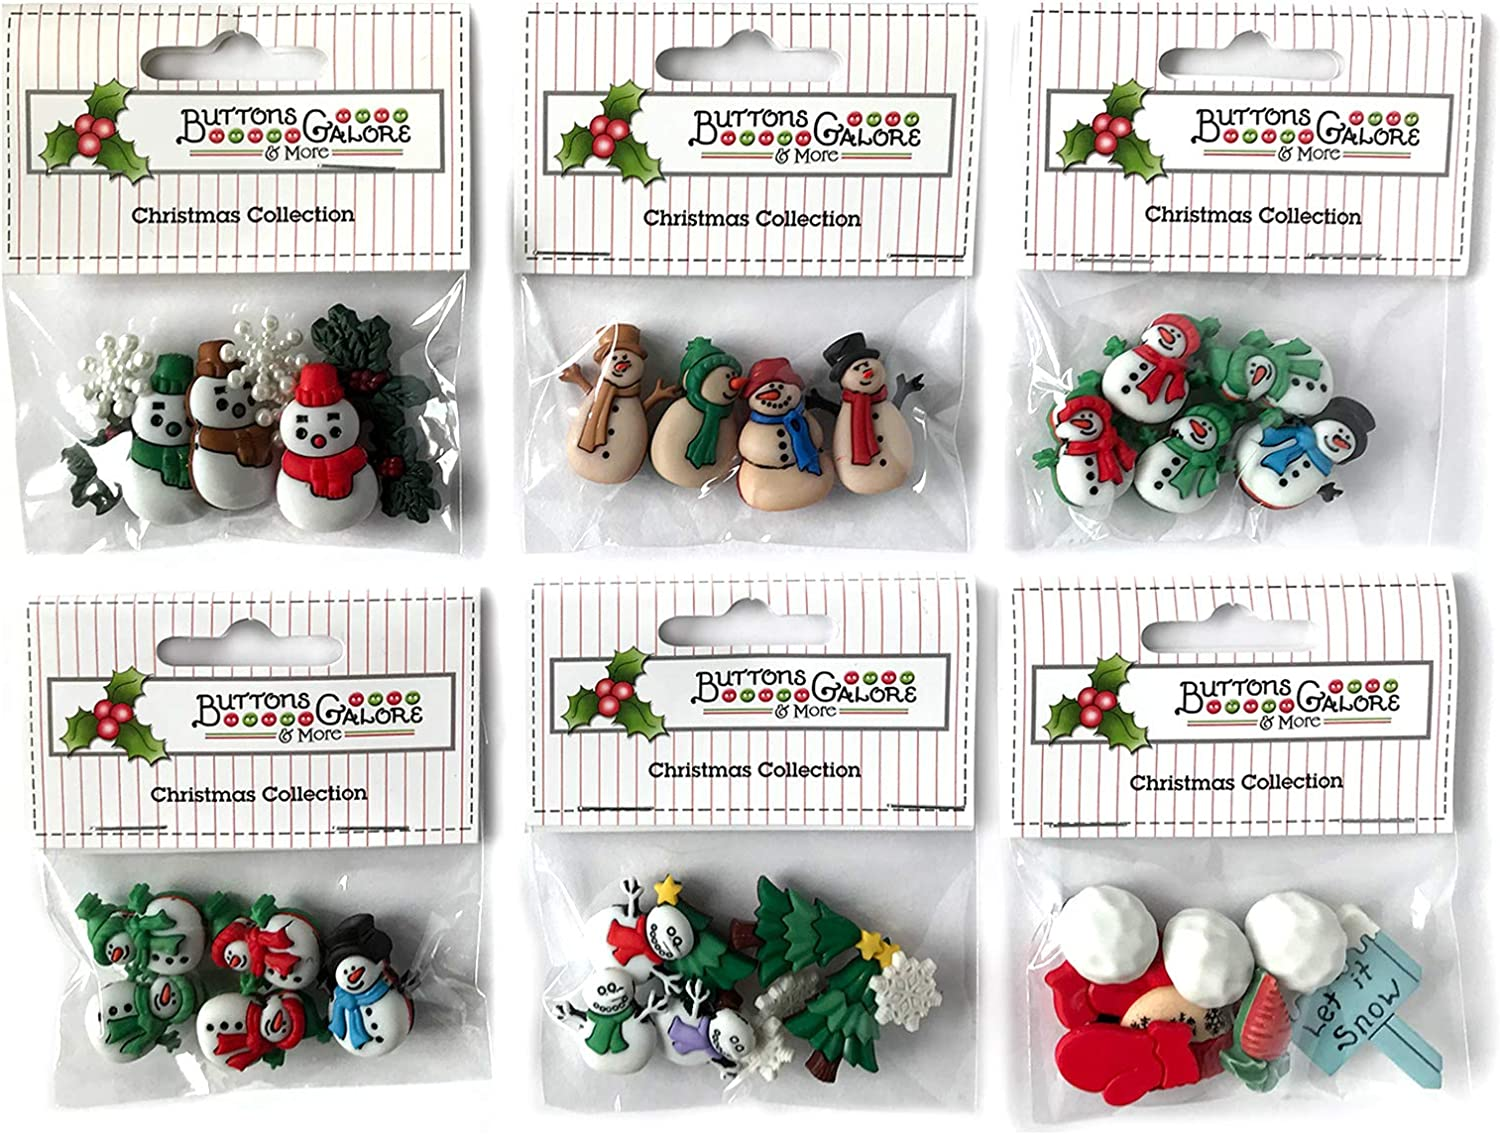 Buttons Galore Buttons ~ CHRISTMAS PRESENTS  Sew Craft